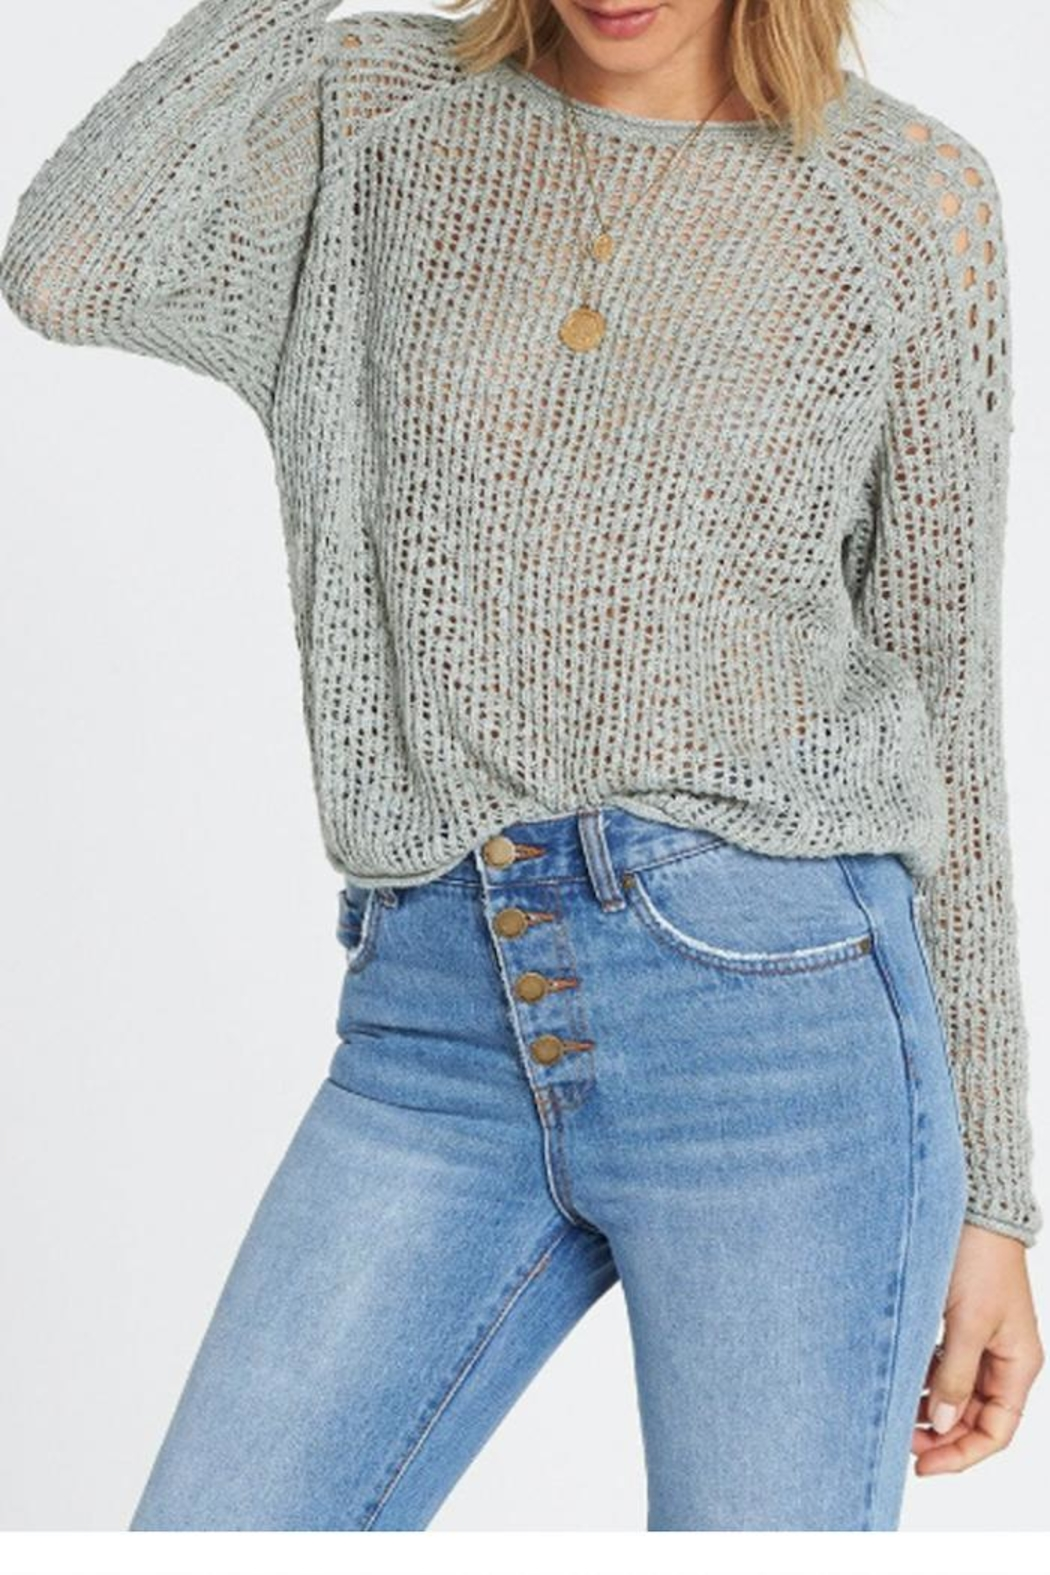 Billabong Loose Knit Sweater - Front Full Image